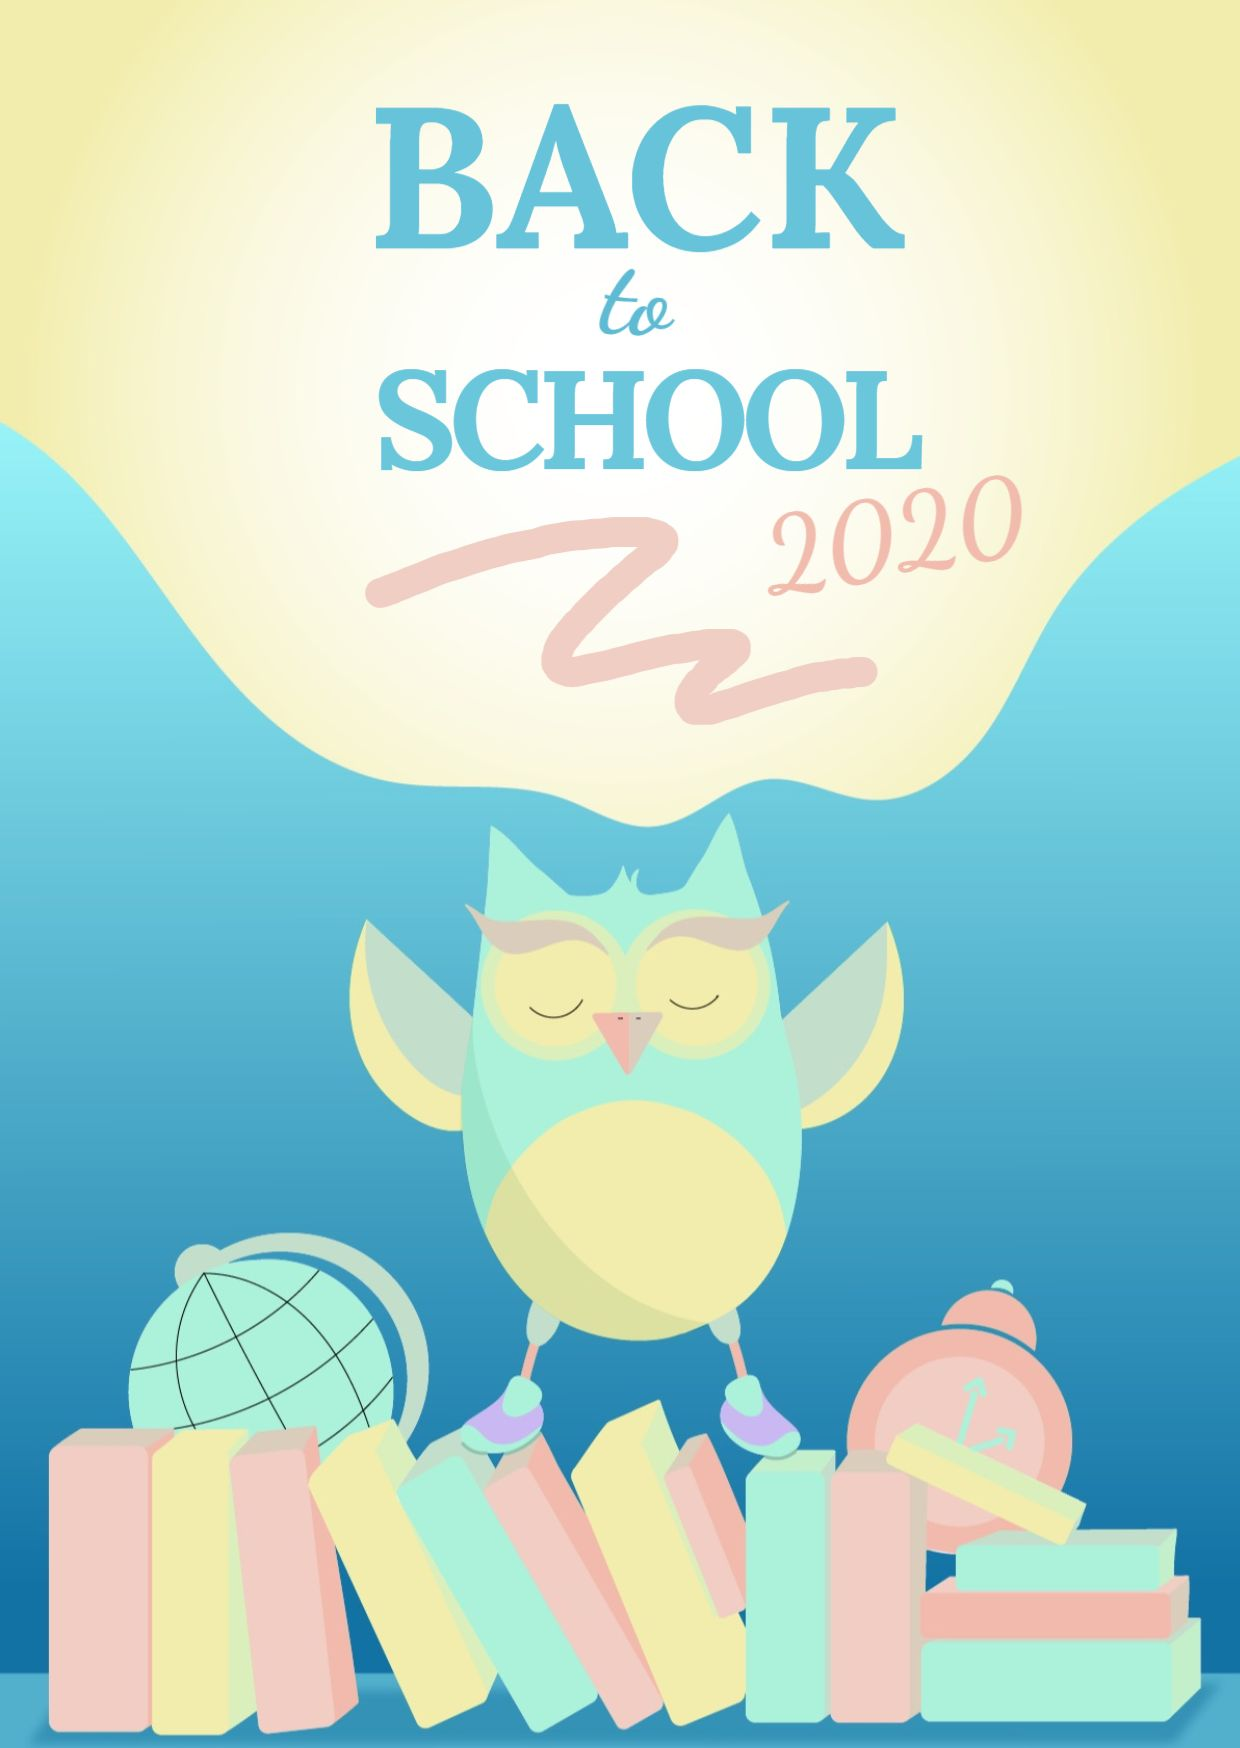 Back to school Greeting Card Template